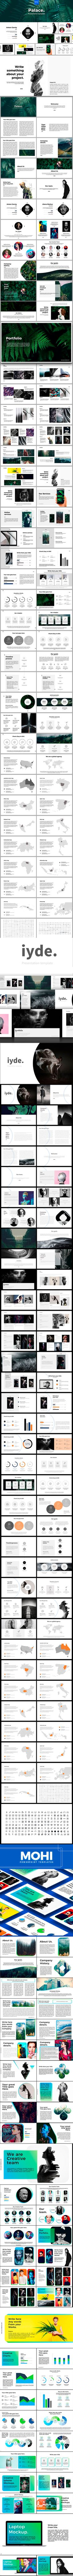 Bundle 3 in 1 — Powerpoint PPTX #powerpoint template #powerpoint theme • Available here ➝ https://graphicriver.net/item/bundle-3-in-1/20816596?ref=pxcr